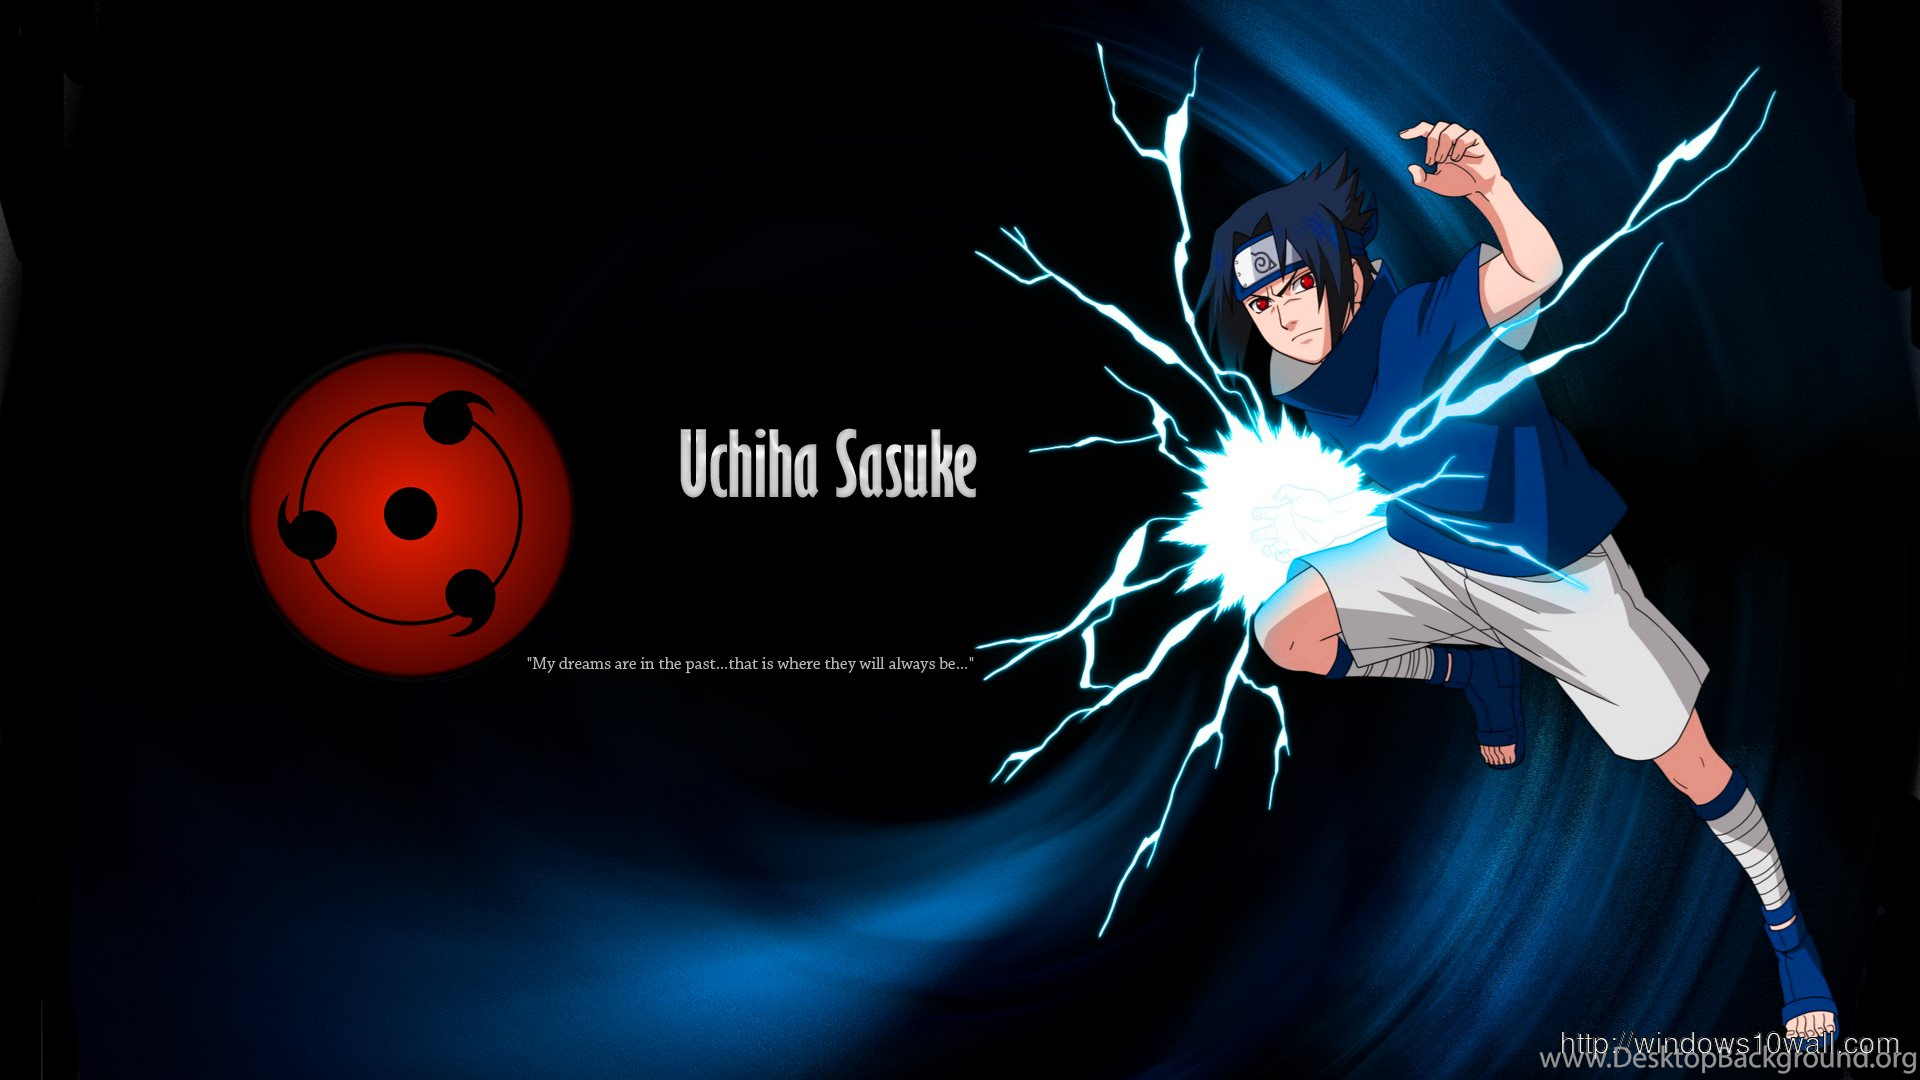 Simple Wallpaper Naruto Windows 10 - 664753_naruto-shippuden-sasuke-uchiha-wallpapers-windows-10-wallpapers_1920x1080_h  2018.png